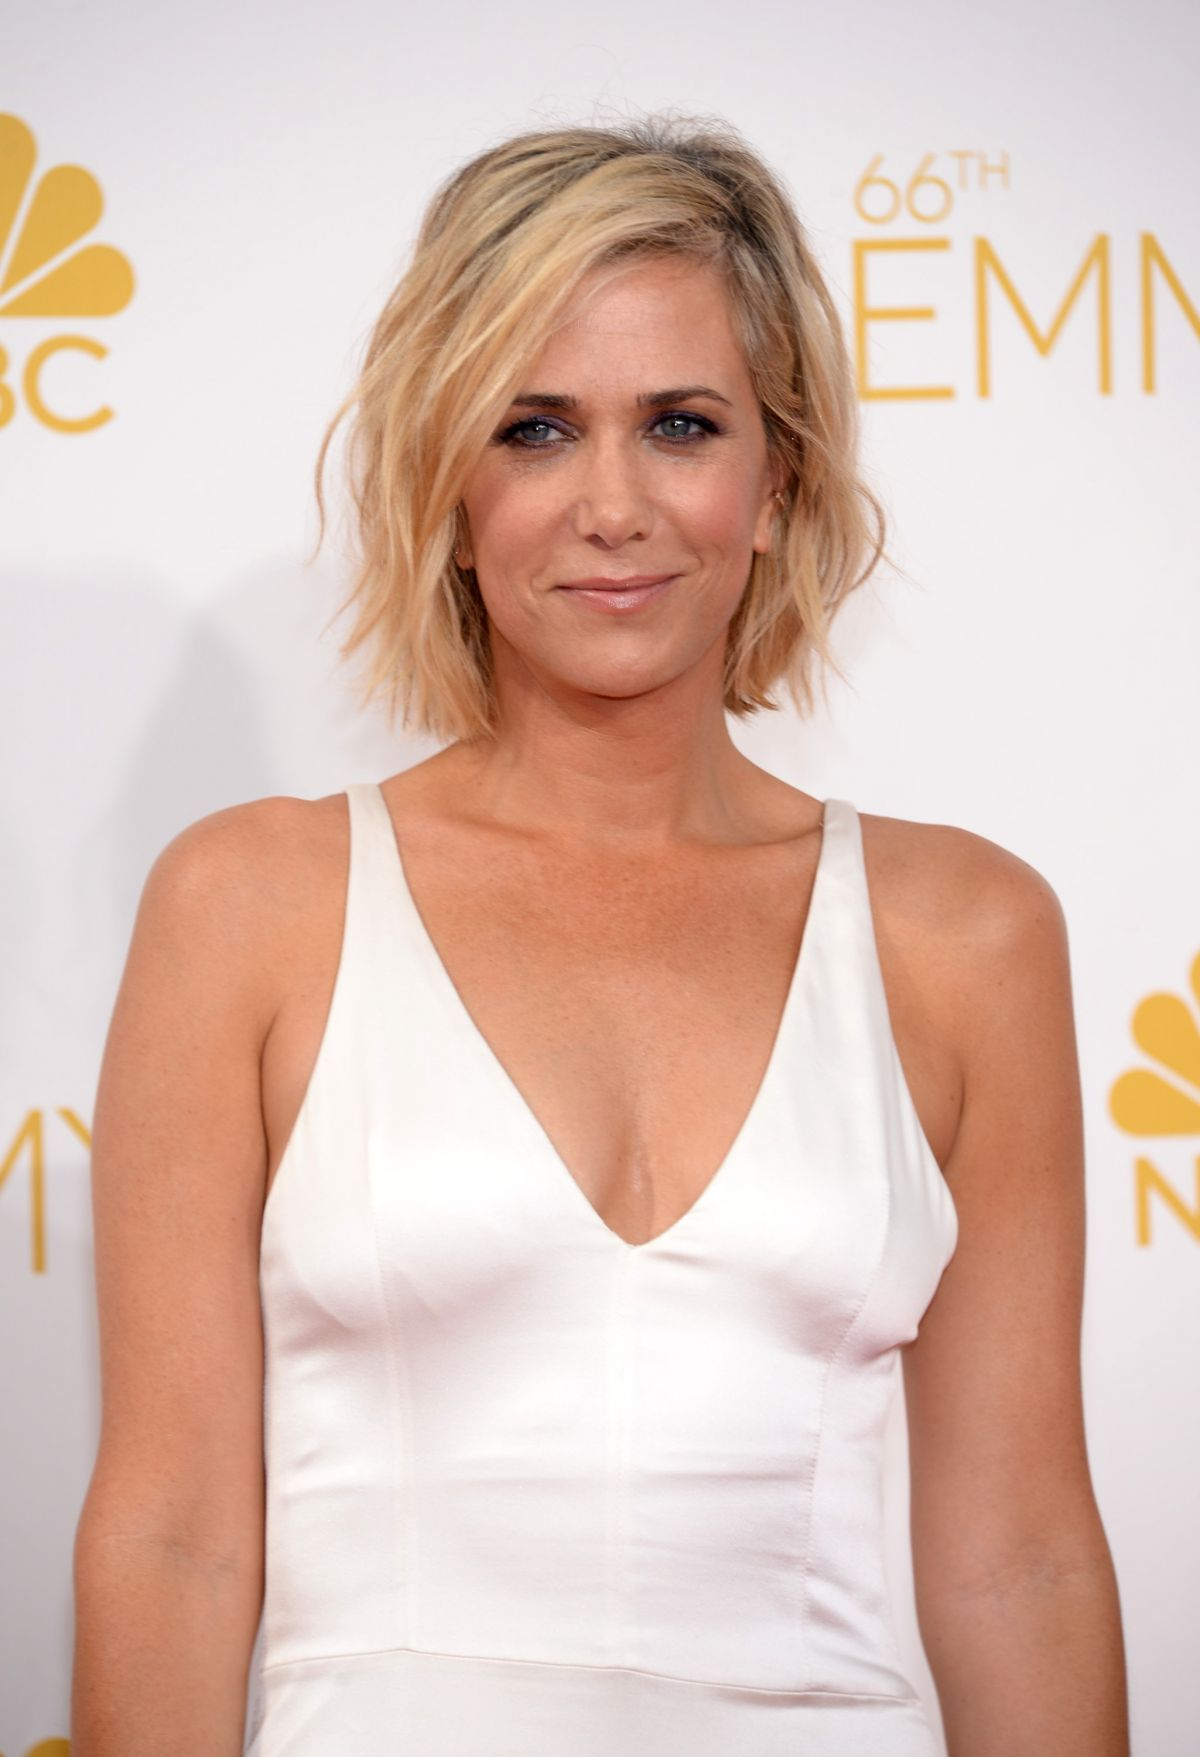 KRISTEN WIIG at 2014 Emmy Awards - HawtCelebs - HawtCelebs